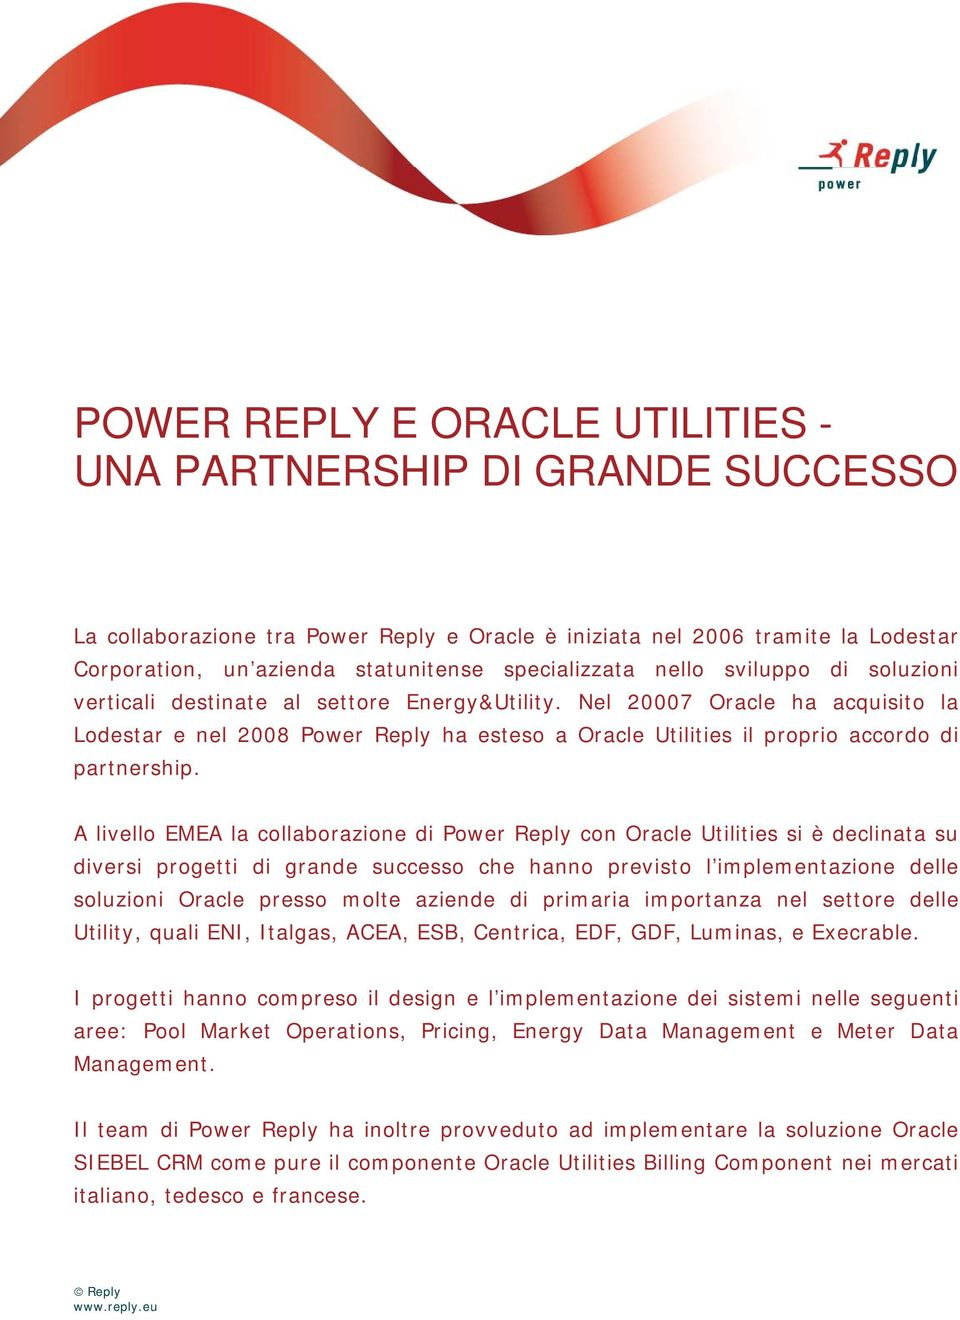 Nel 20007 Oracle ha acquisito la Lodestar e nel 2008 Power Reply ha esteso a Oracle Utilities il proprio accordo di partnership.